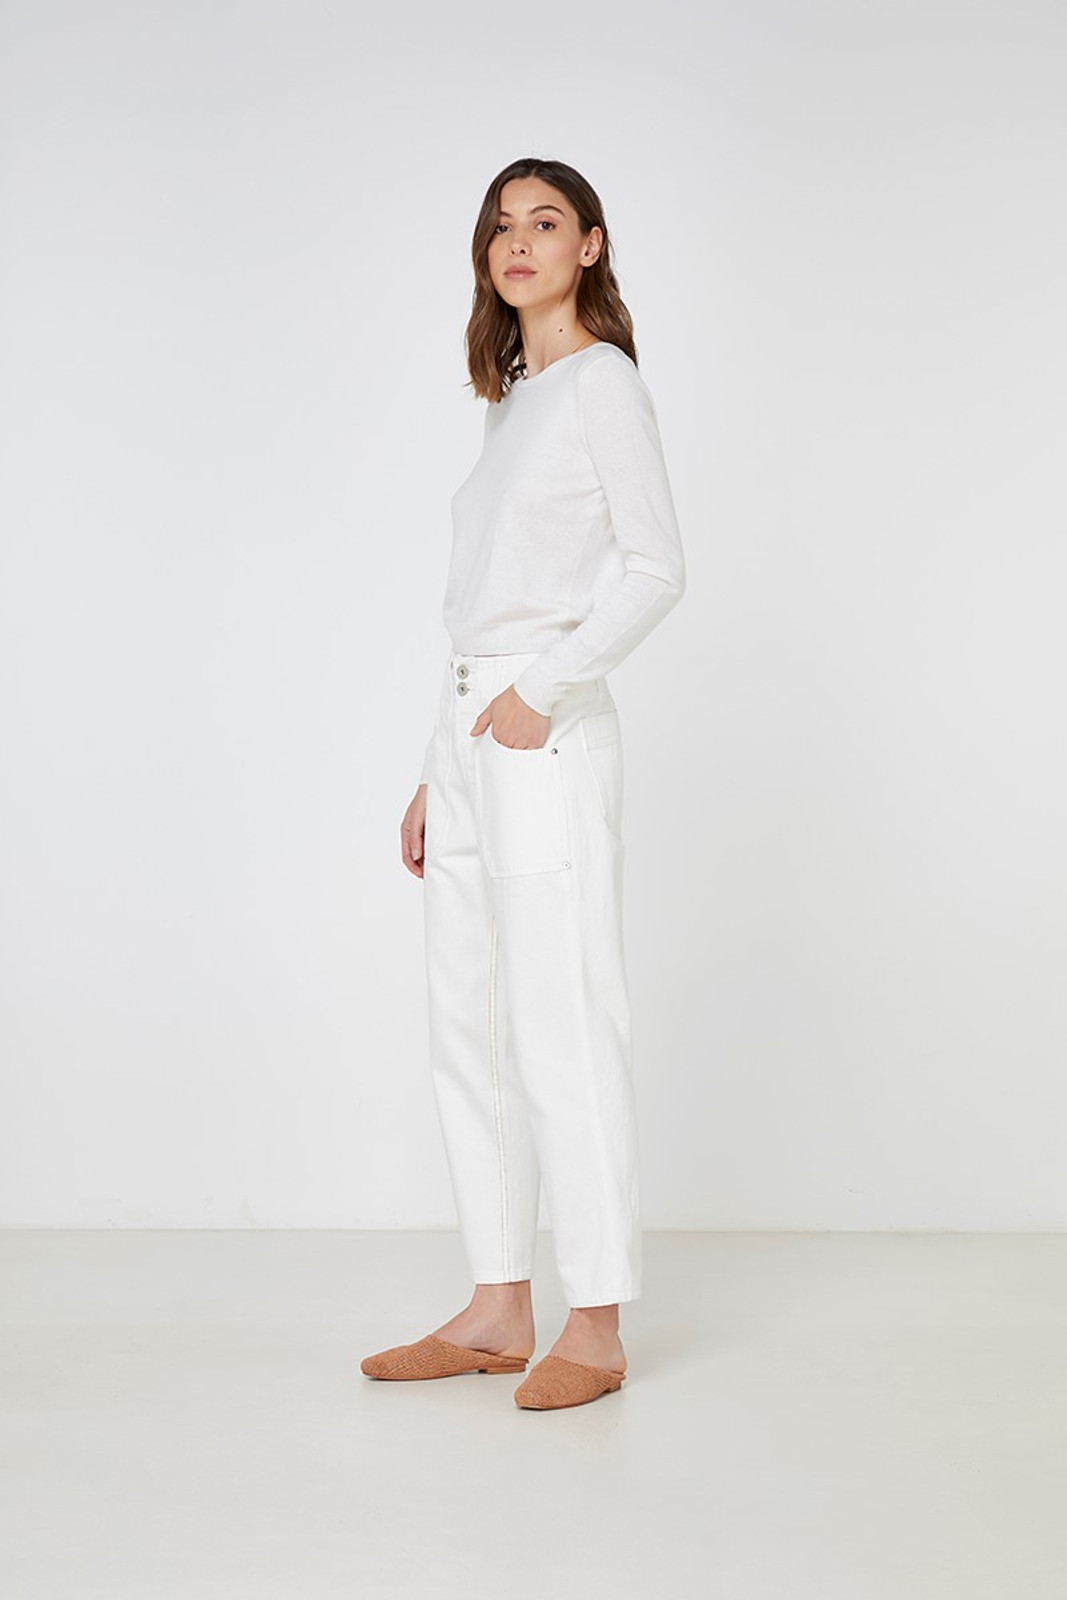 Elka Collective Gale Knit White  2